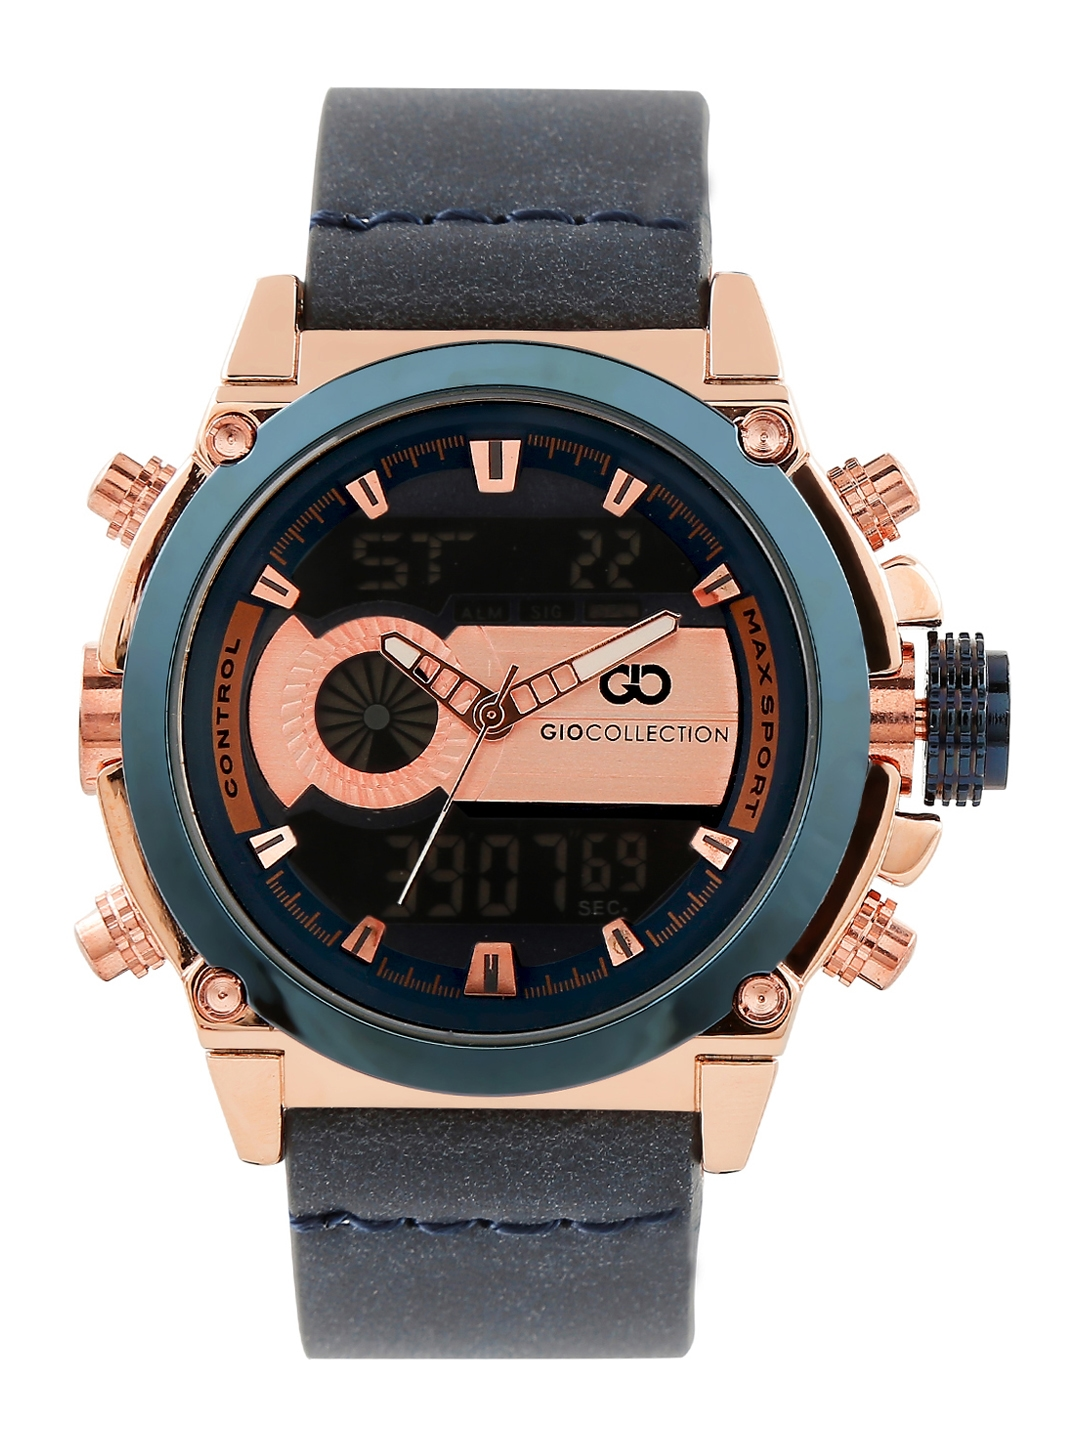 GIO COLLECTION Men Blue Analogue and Digital Watch G3010 03